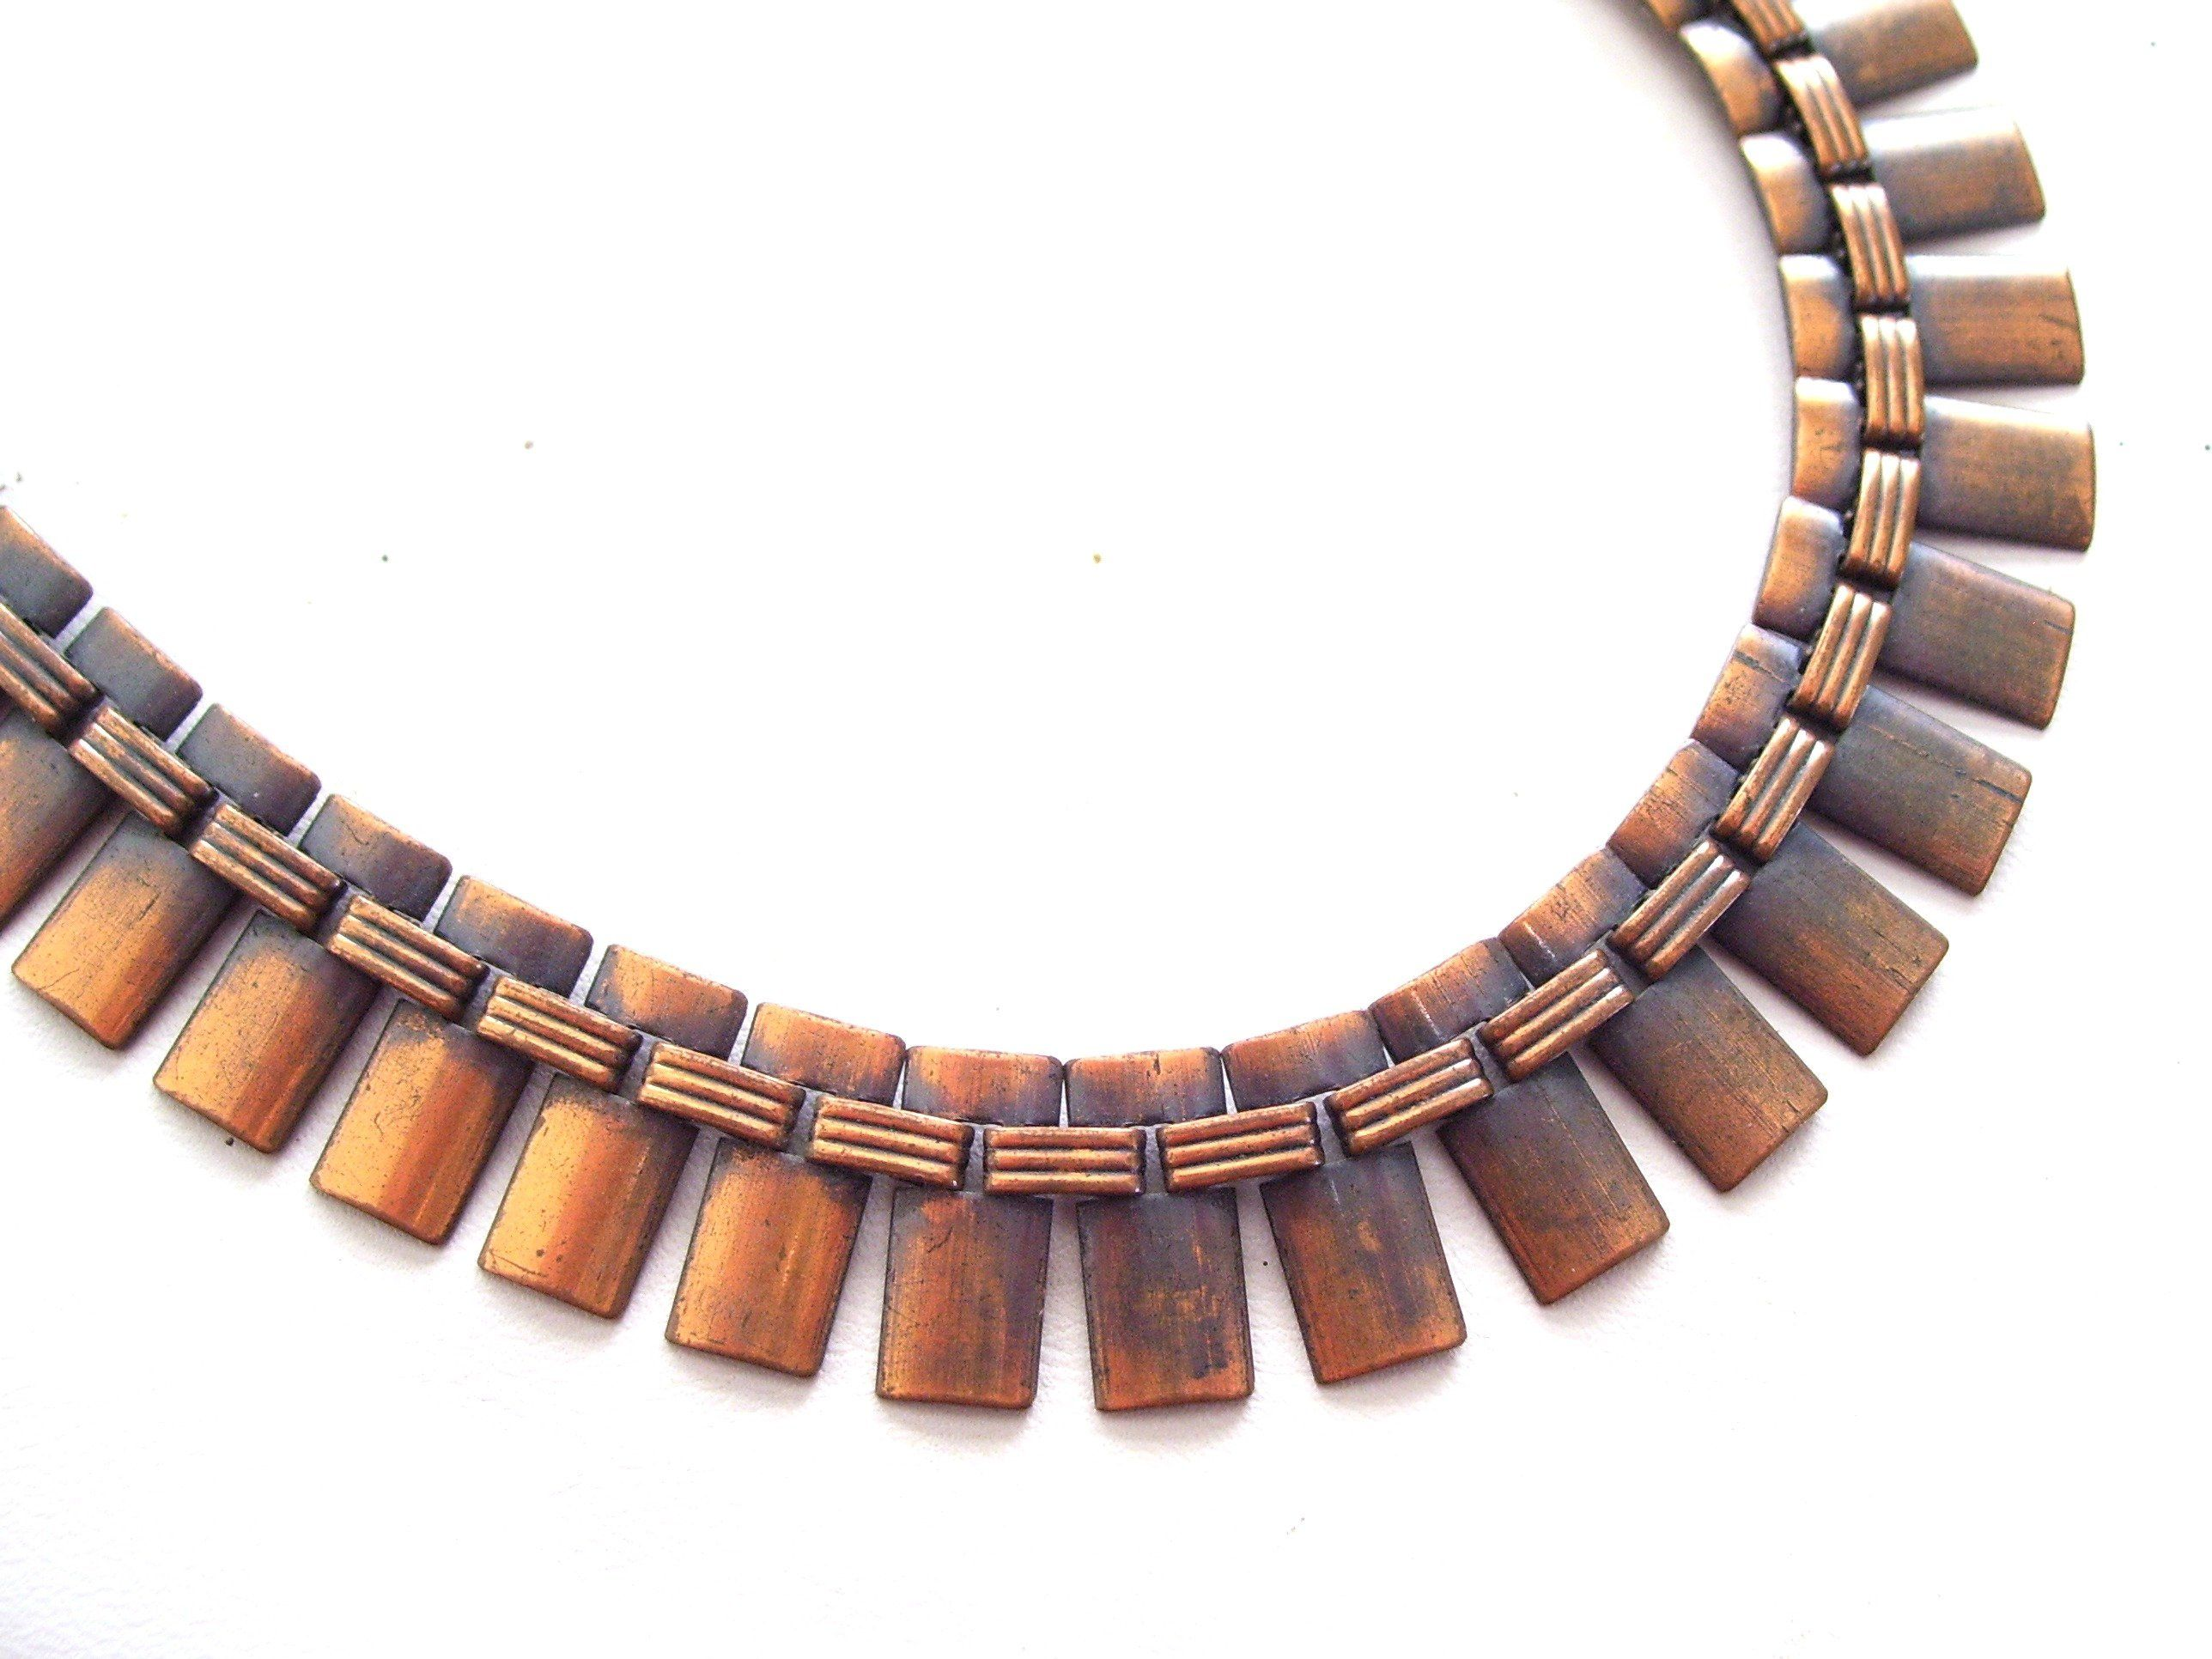 Gold /& Red Jewelry 1980/'s Choker Necklace Enameled Statement Necklace Vintage Red Link Necklace V Link Design